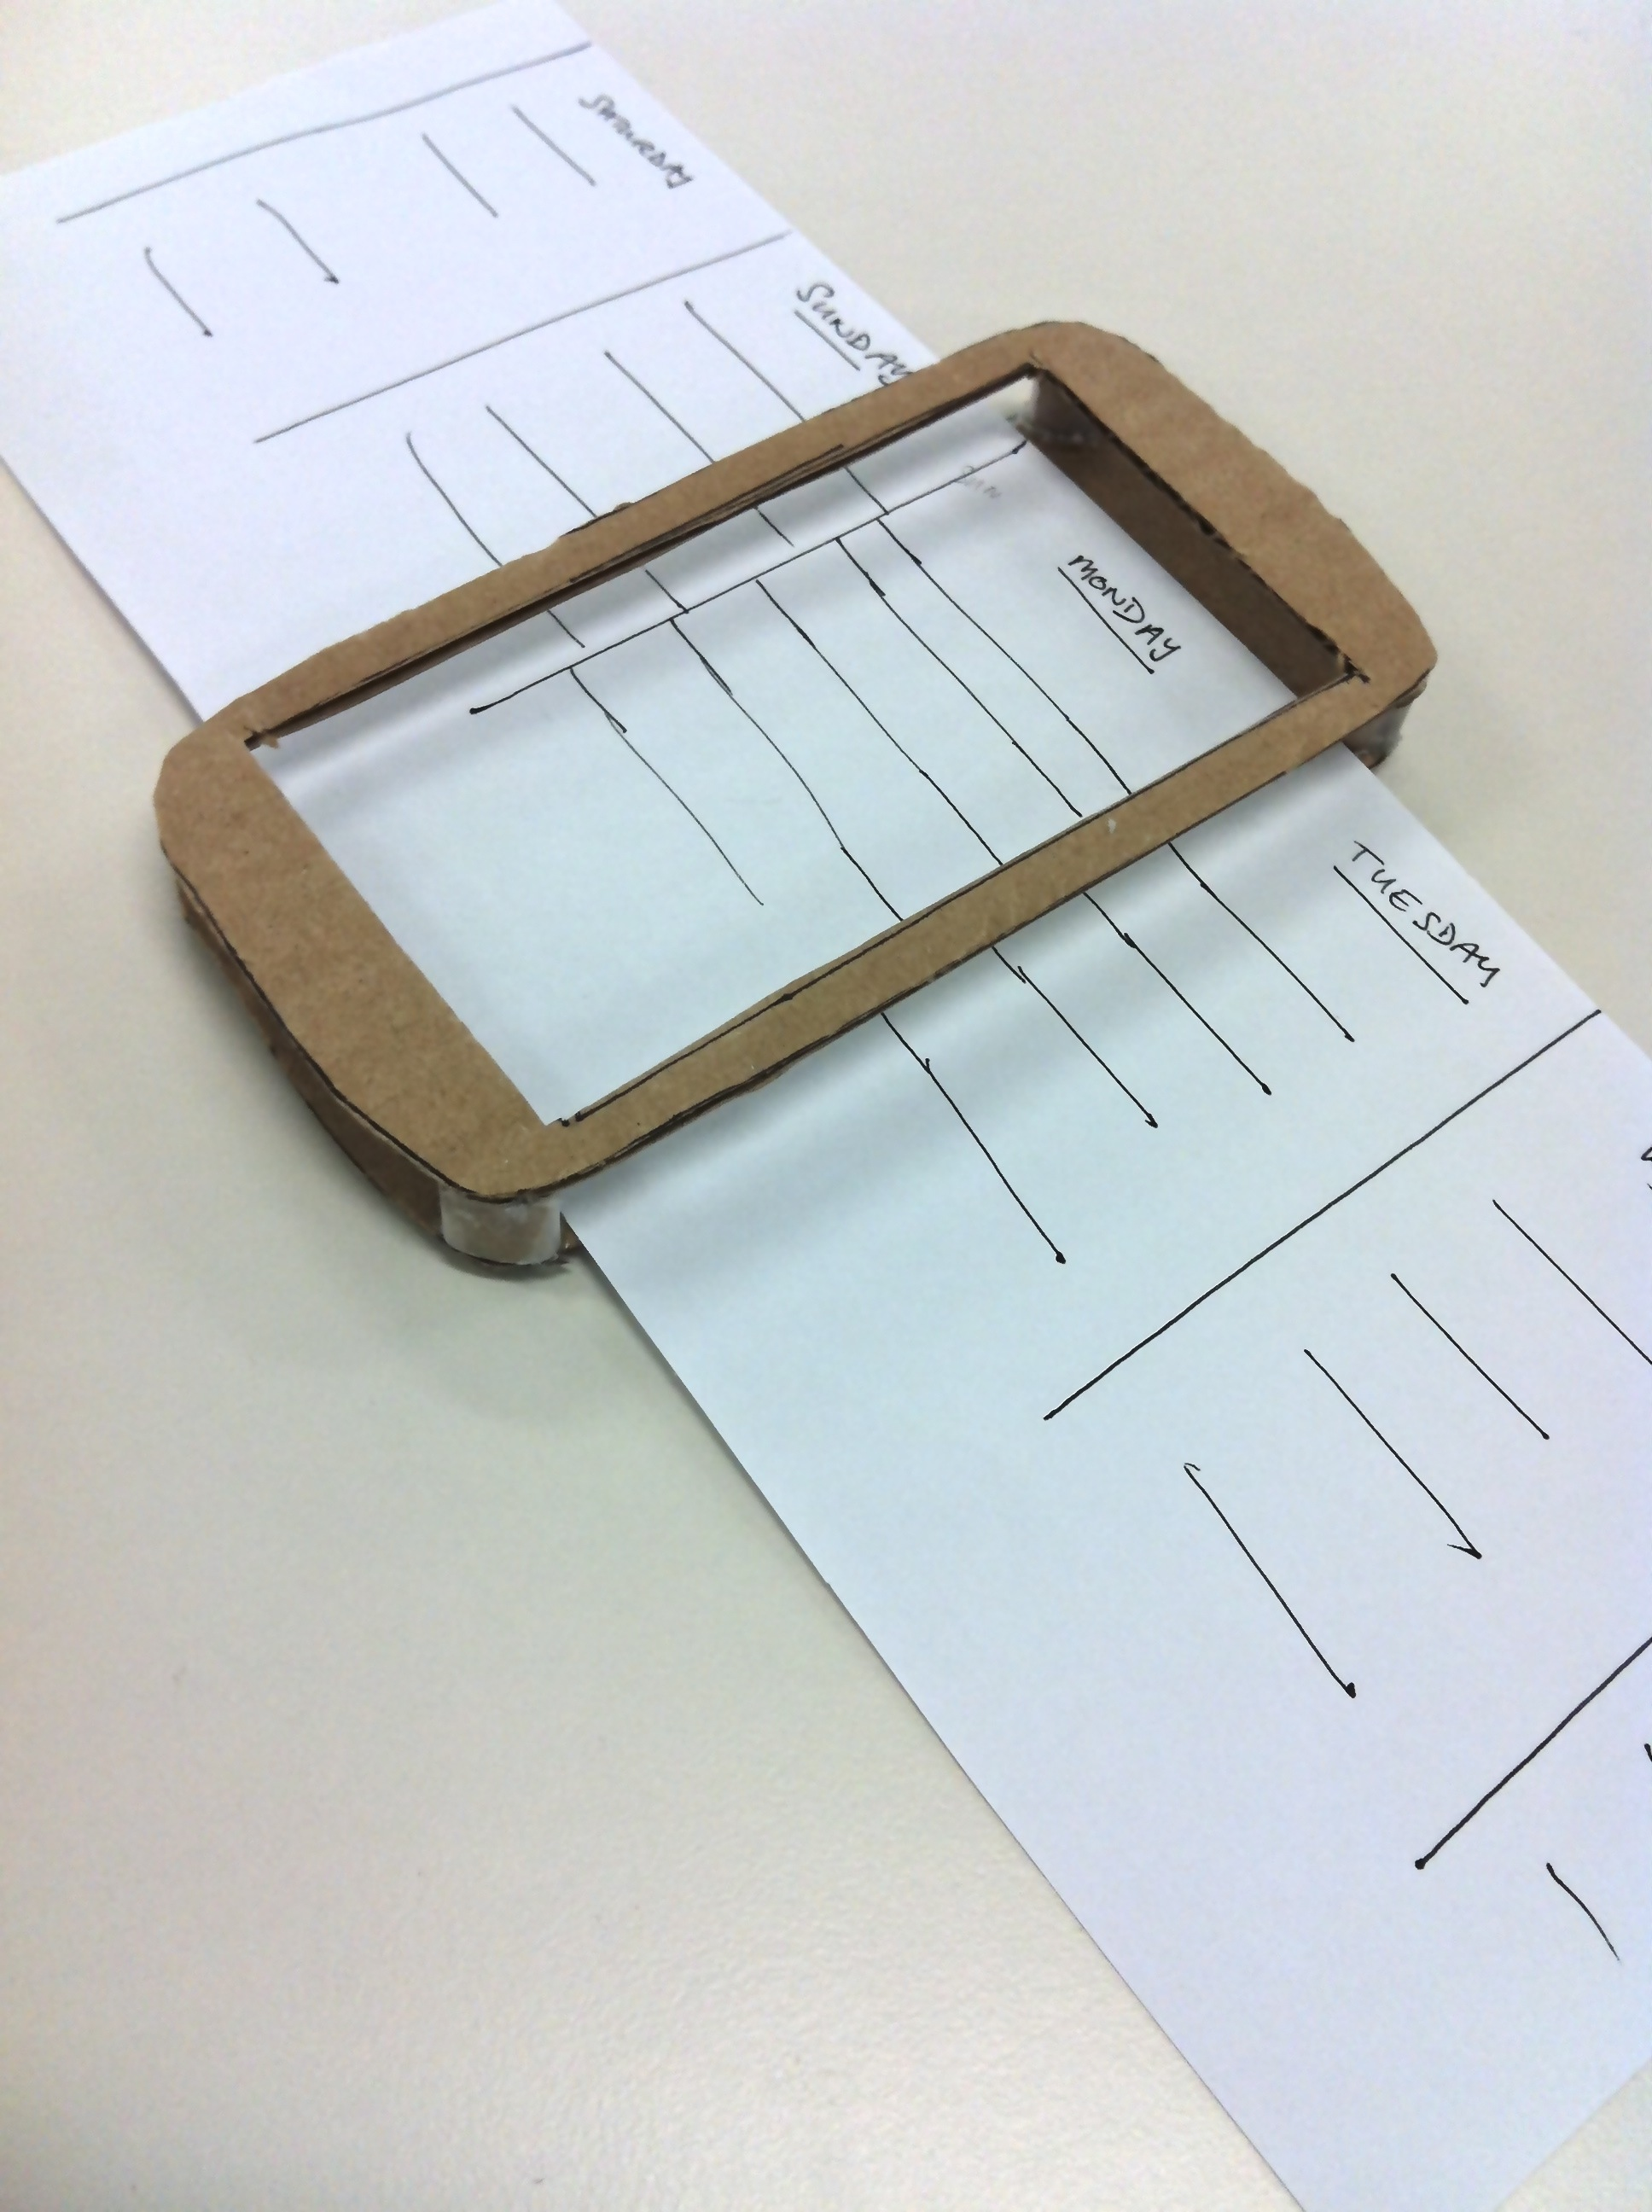 paper prototype Building (parts of) an application's gui using low-cost materials, such as pen and paper executing end-user scenarios against that paper gui, effectively testing.